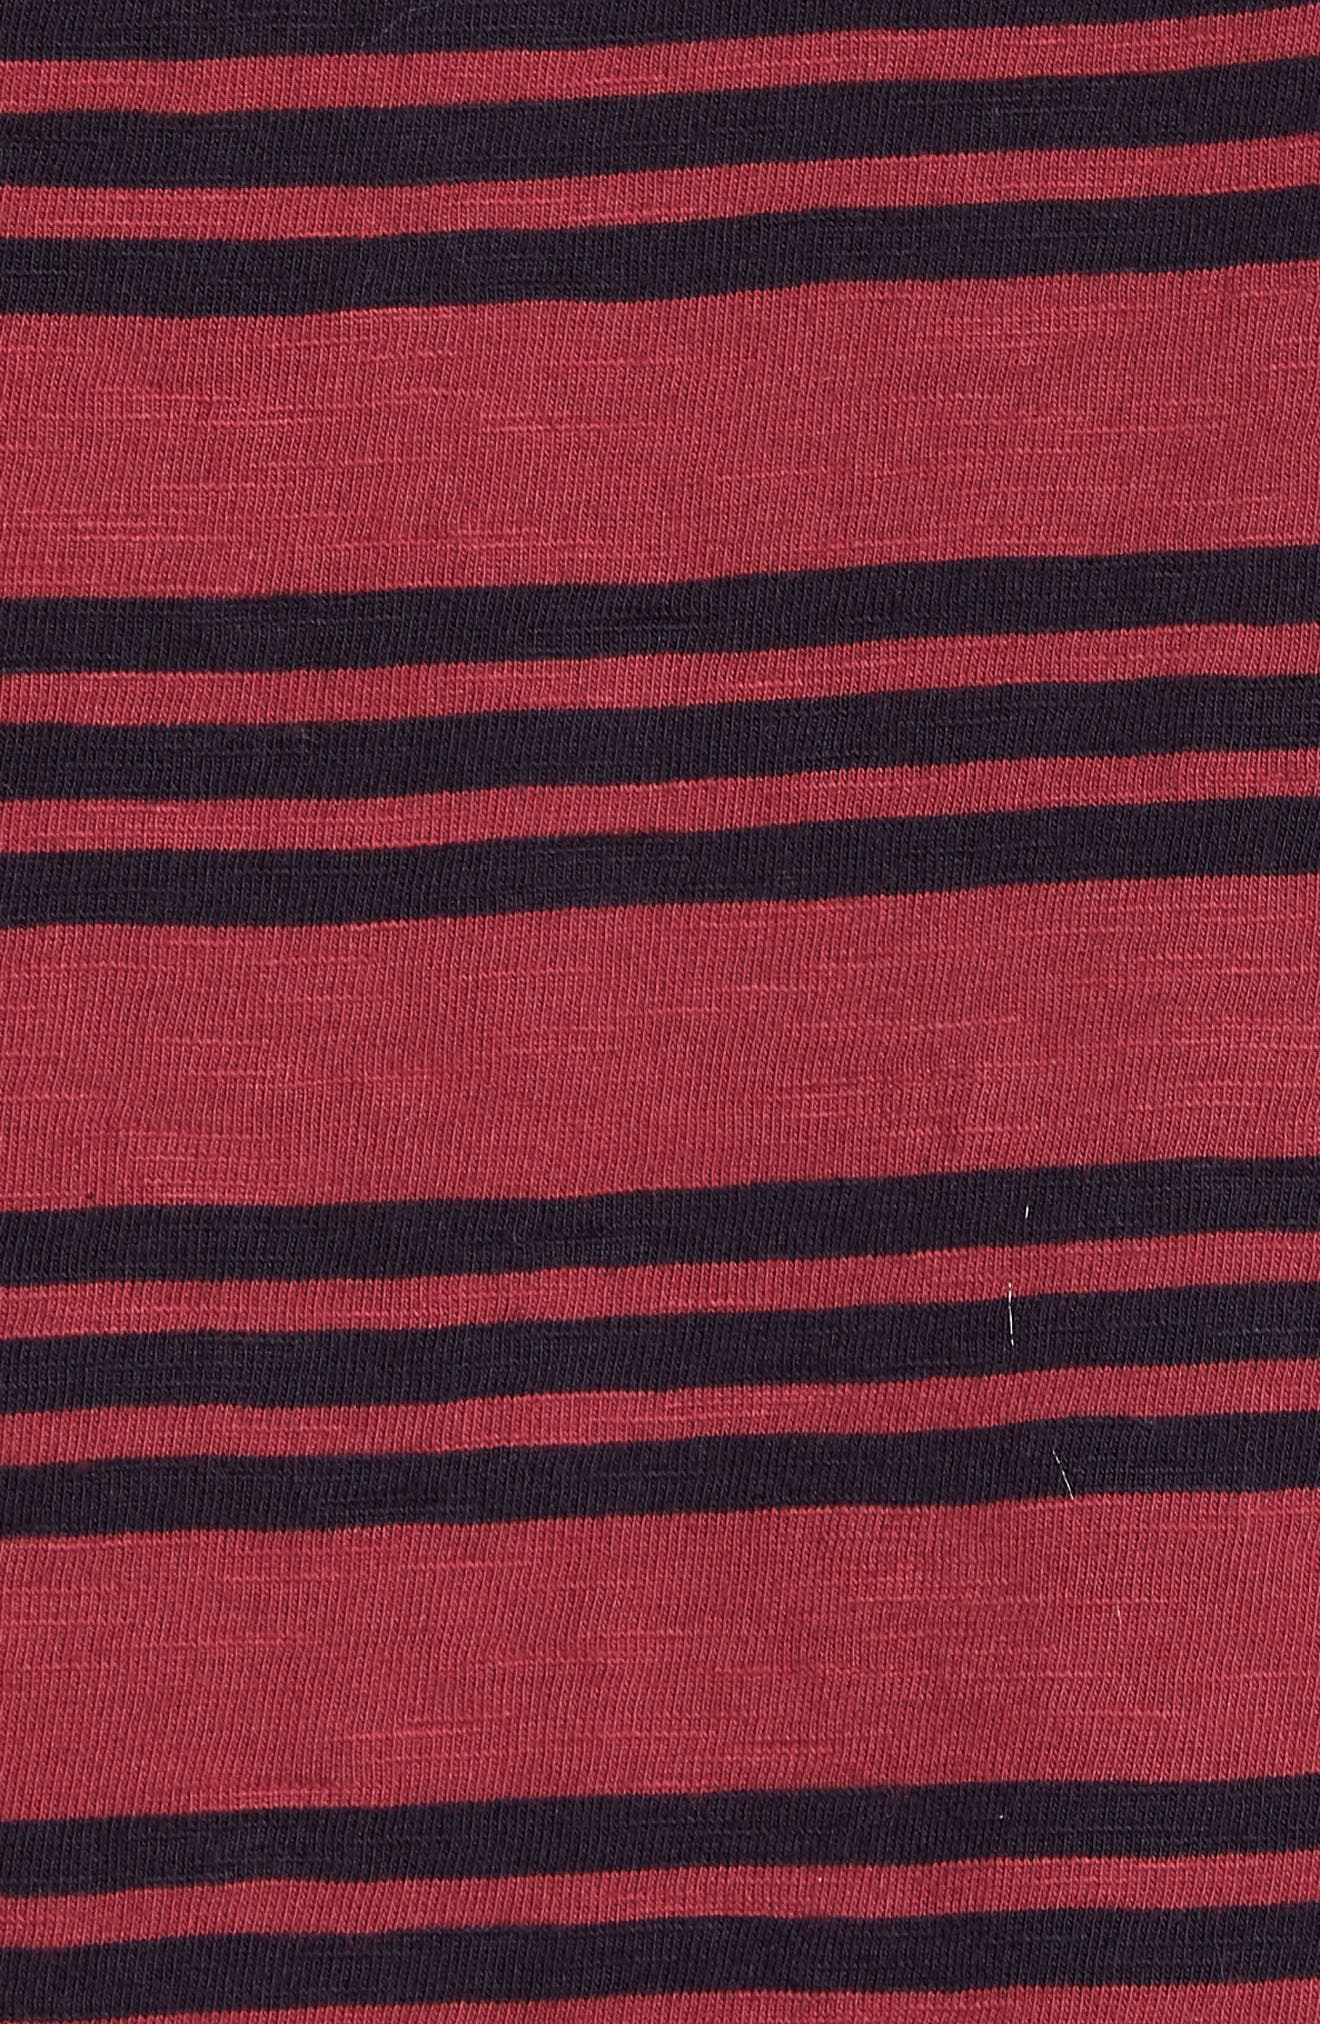 Alternate Image 5  - French Connection Triple Stripe Garment Dyed T-Shirt